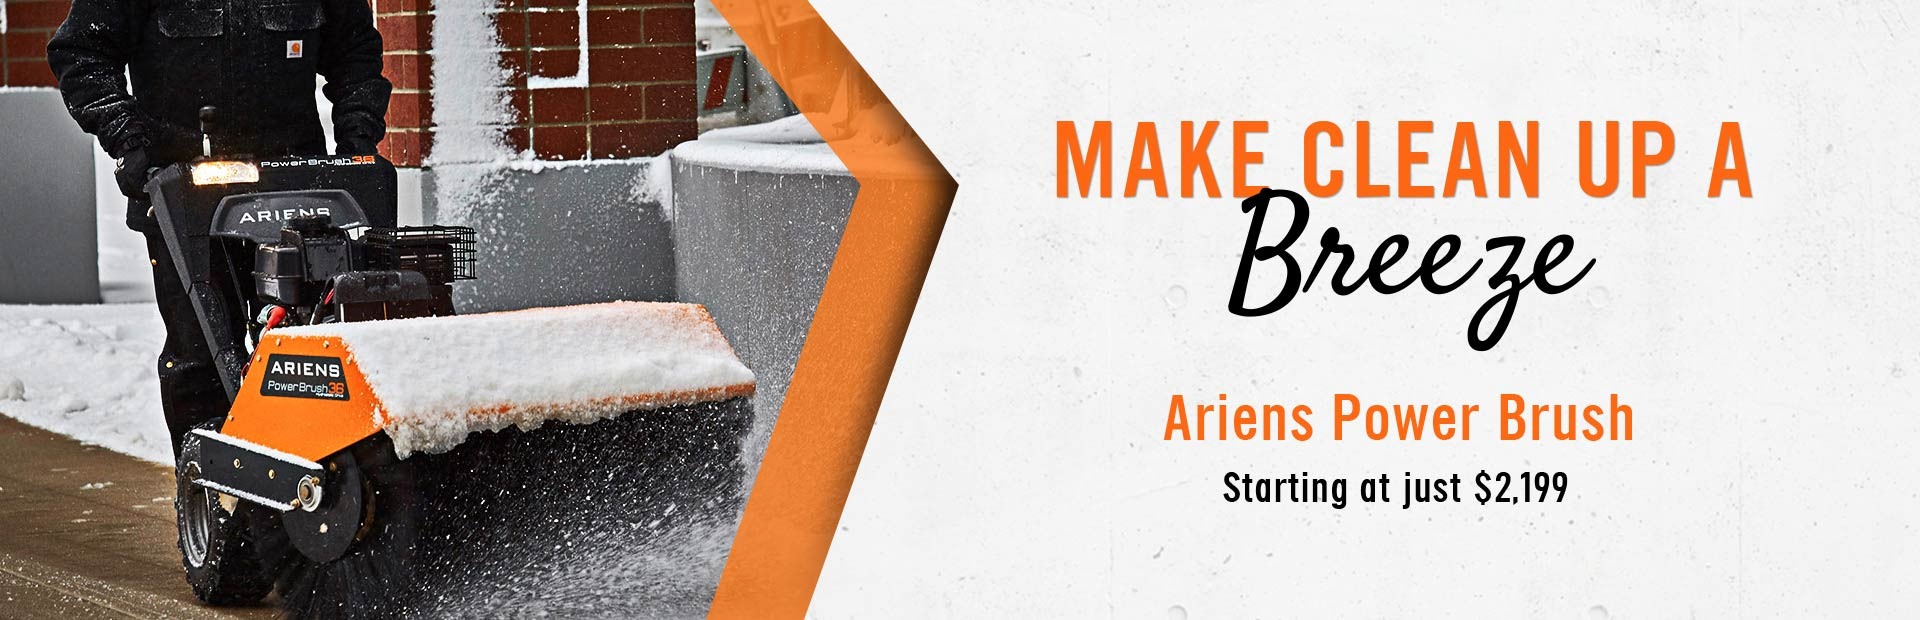 Huge Selection of Ariens Power Brush in Stock: Starting at just $2,199!